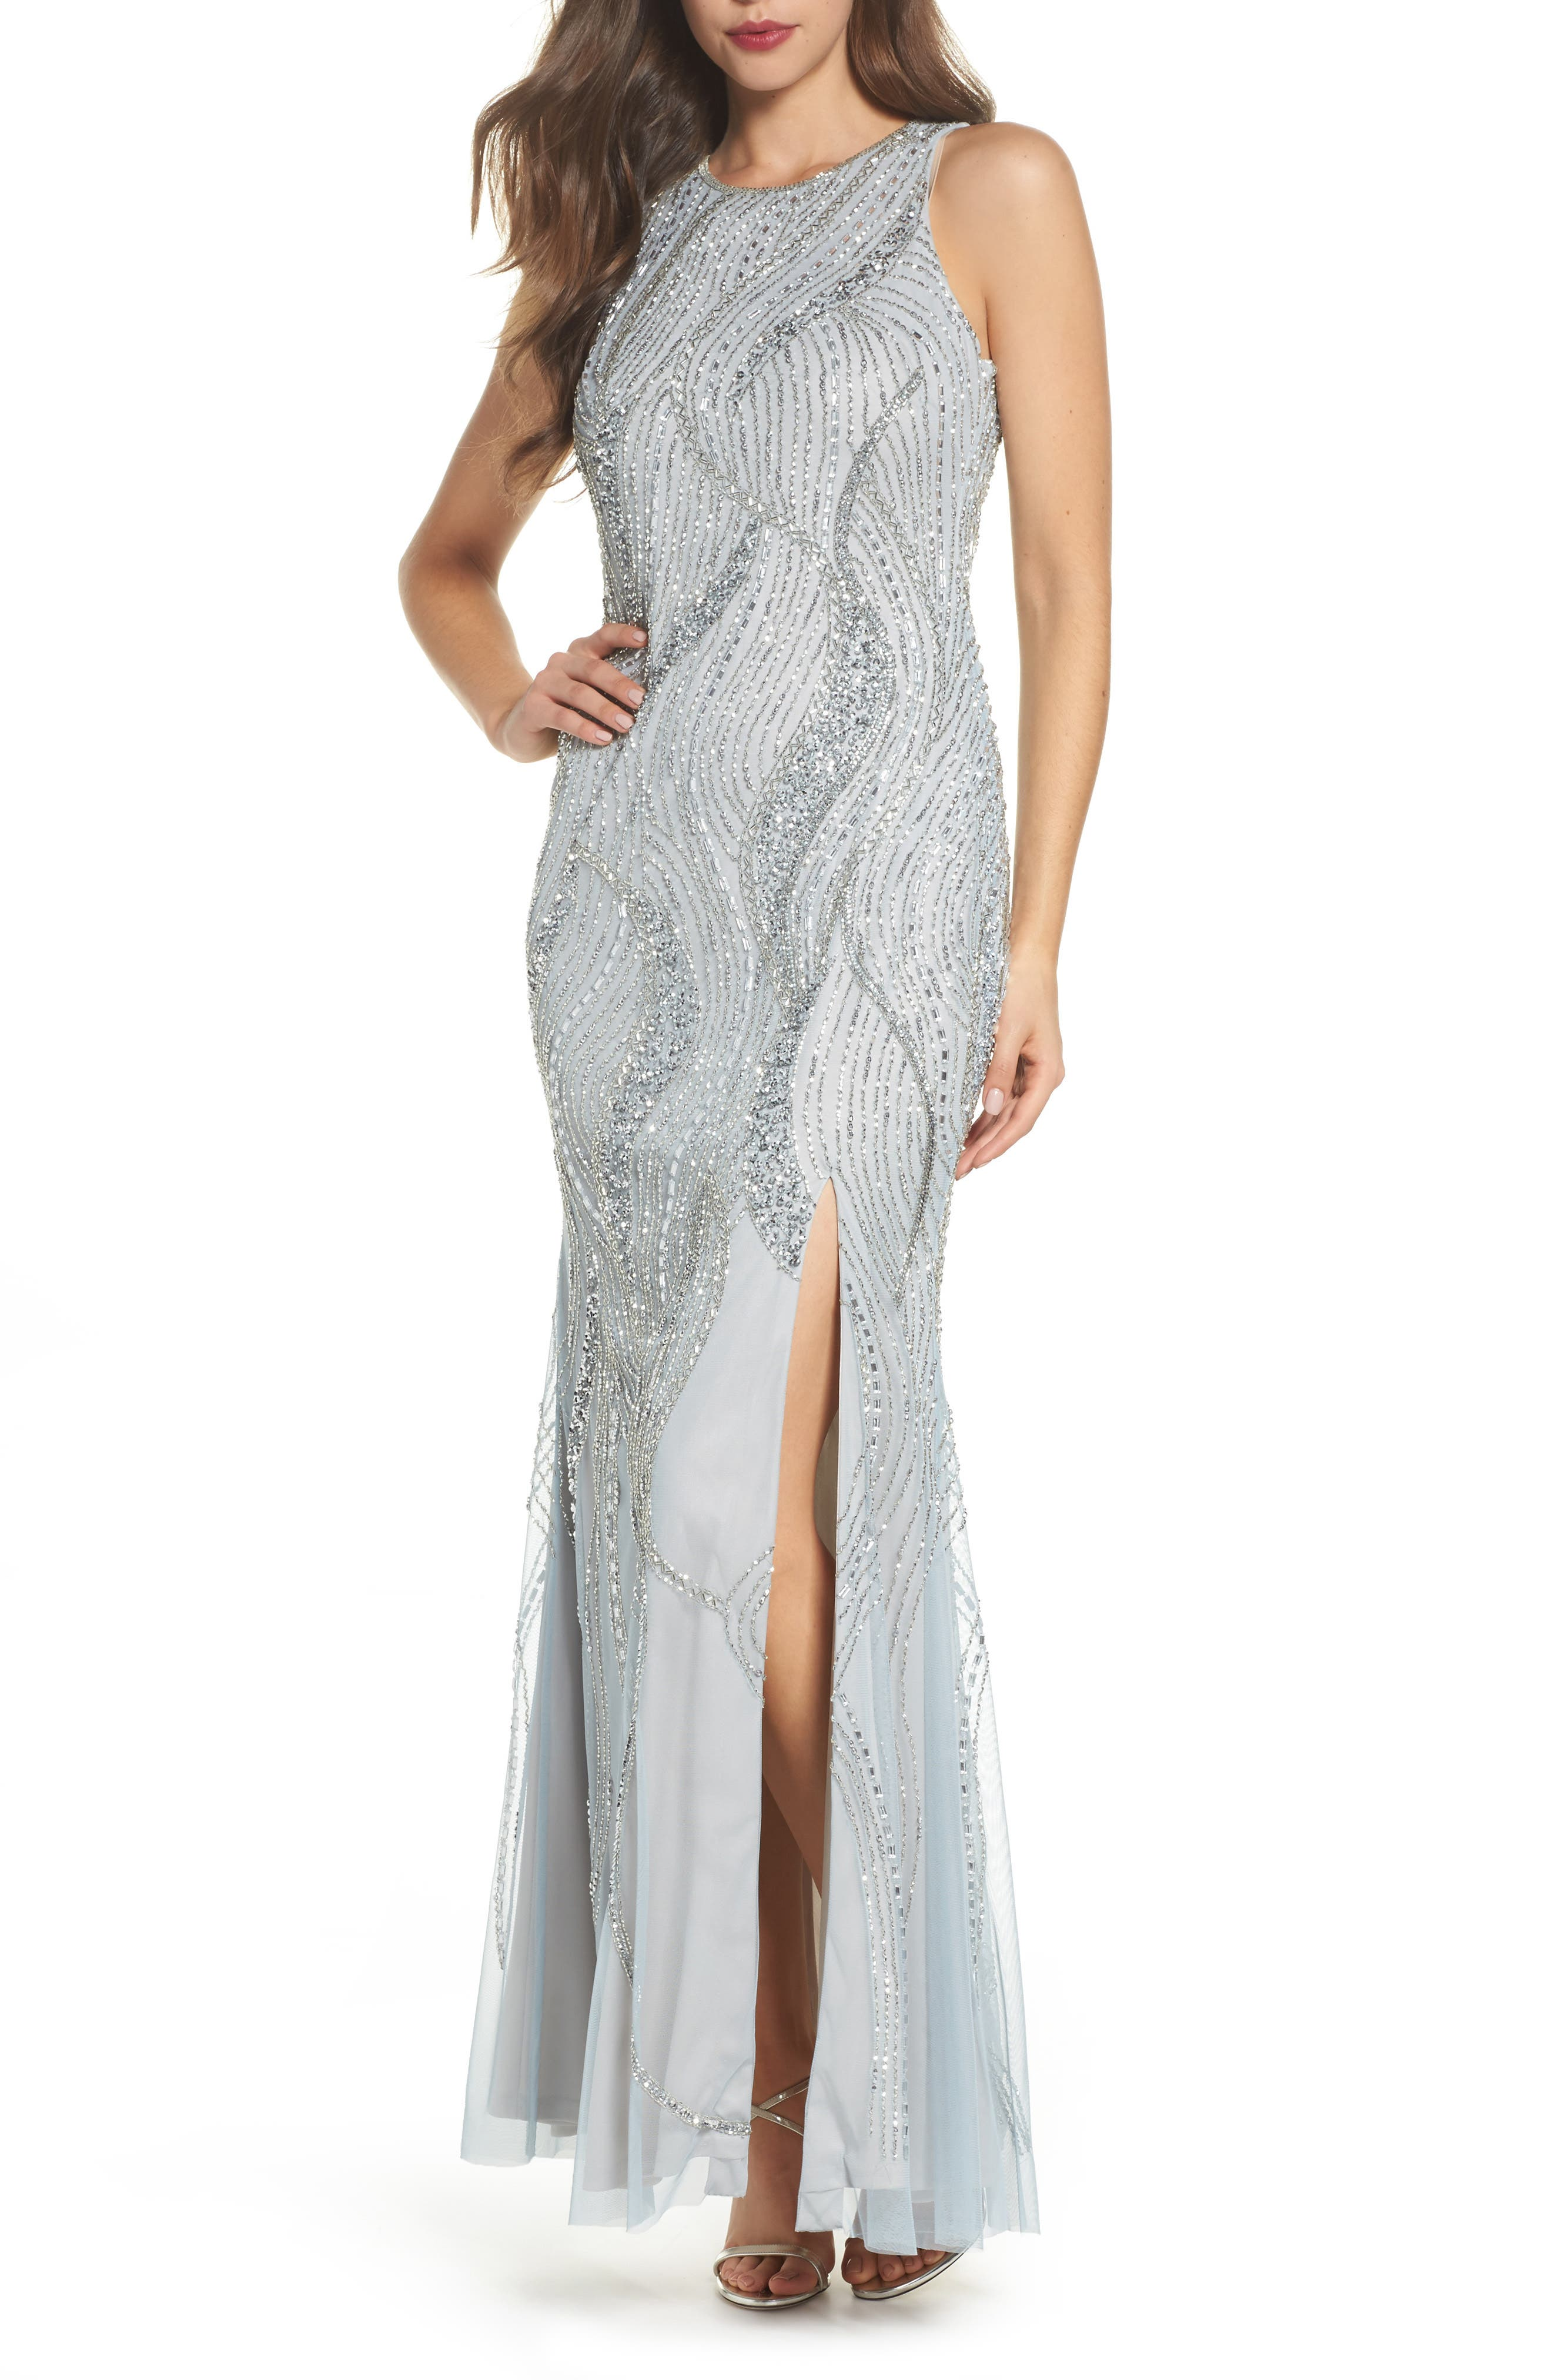 Alternate Image 1 Selected - Adrianna Papell Swirl Beaded Long Dress